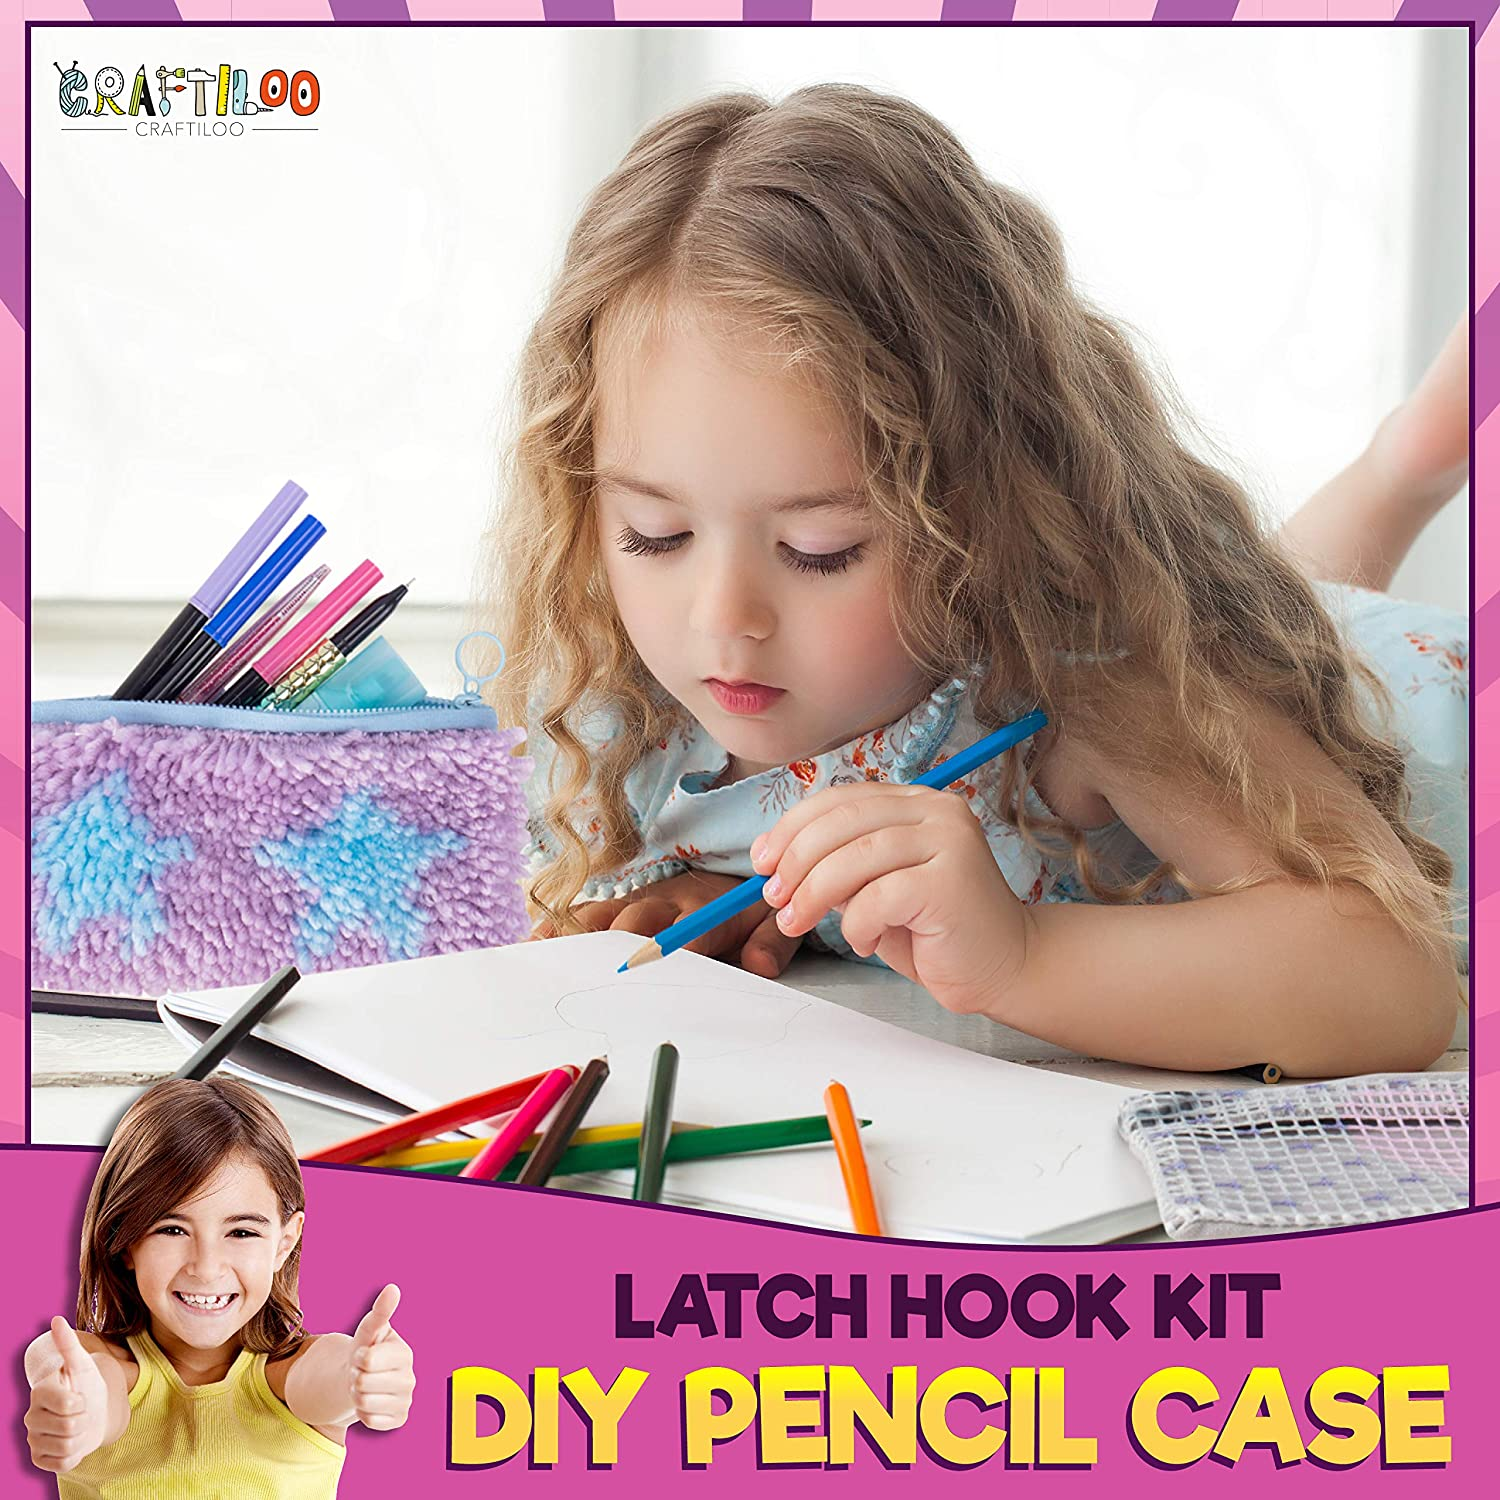 2 Latch Hook Starter Pencil Case DIY Sewing kit for Kids Beginners